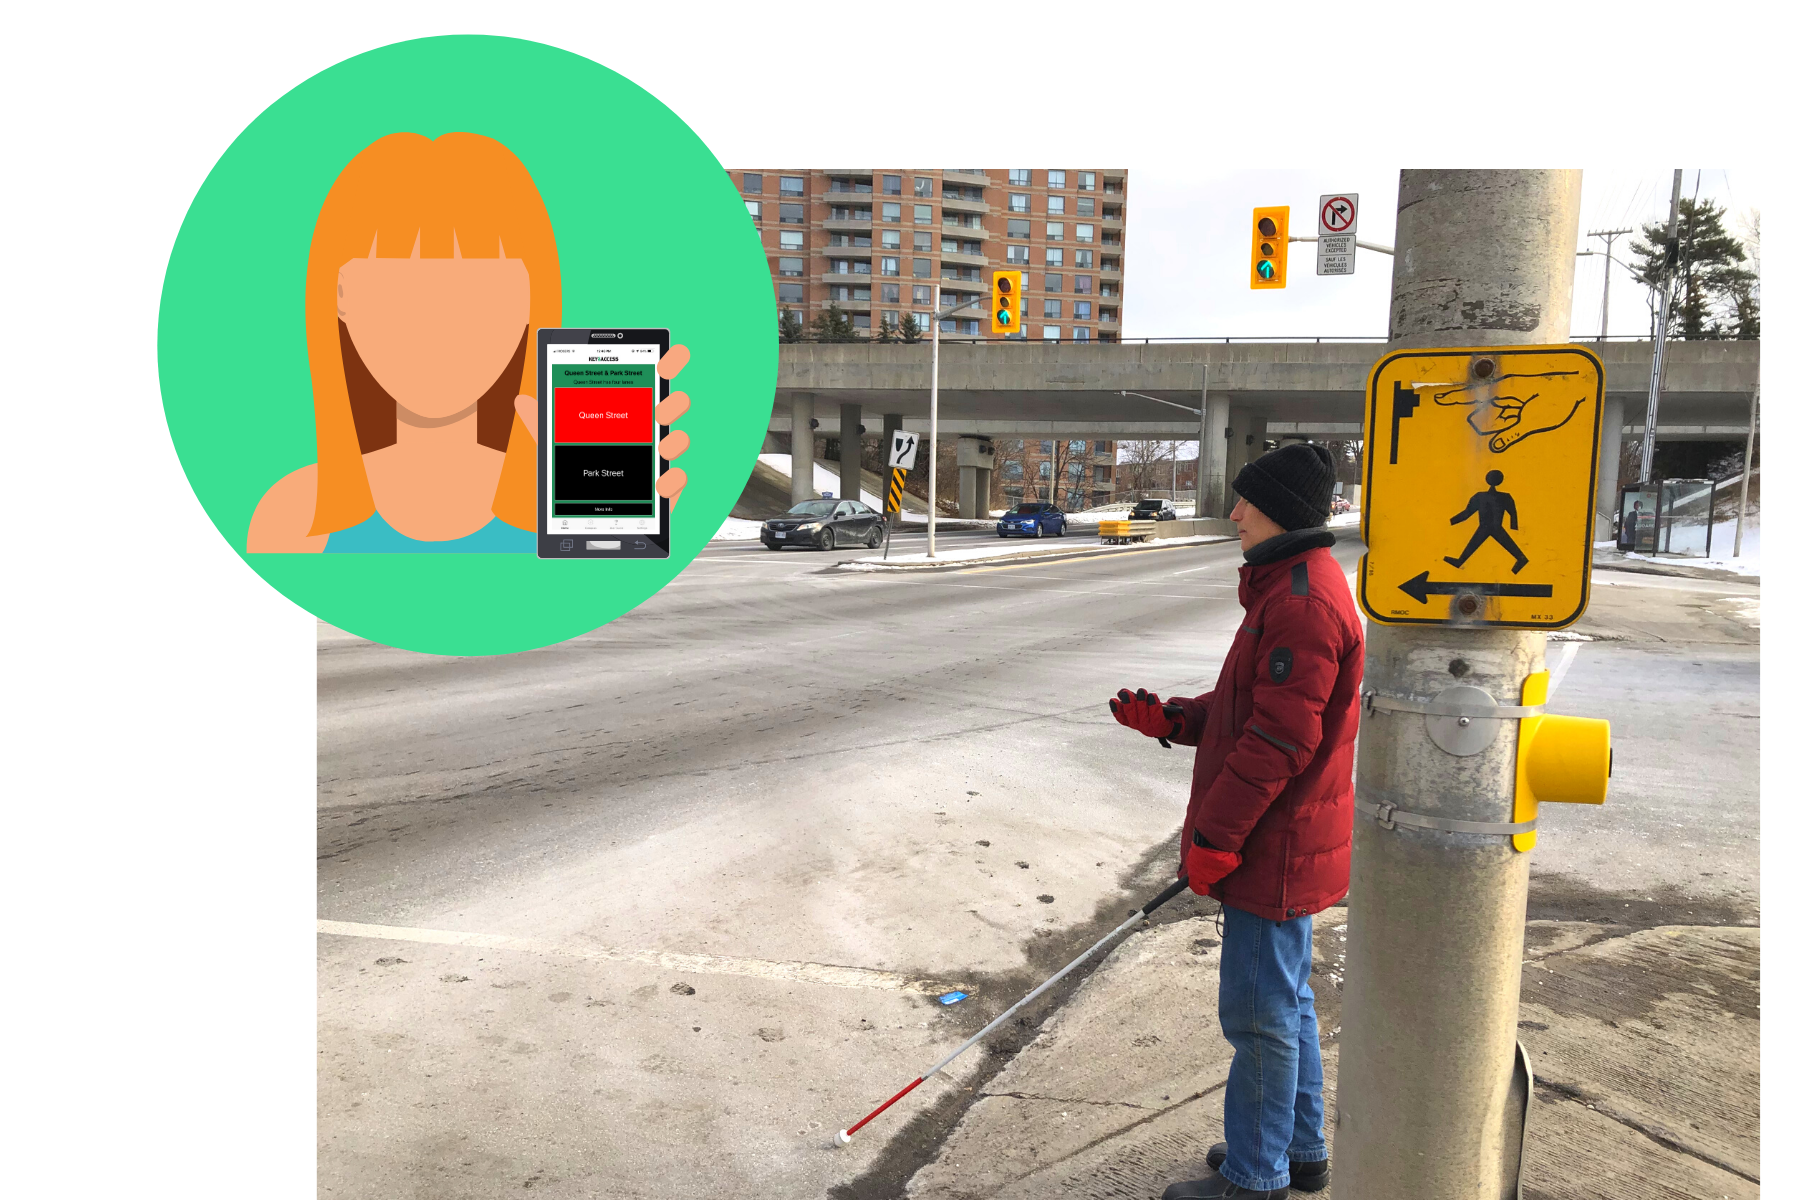 Blind man at intersection holding smartphone